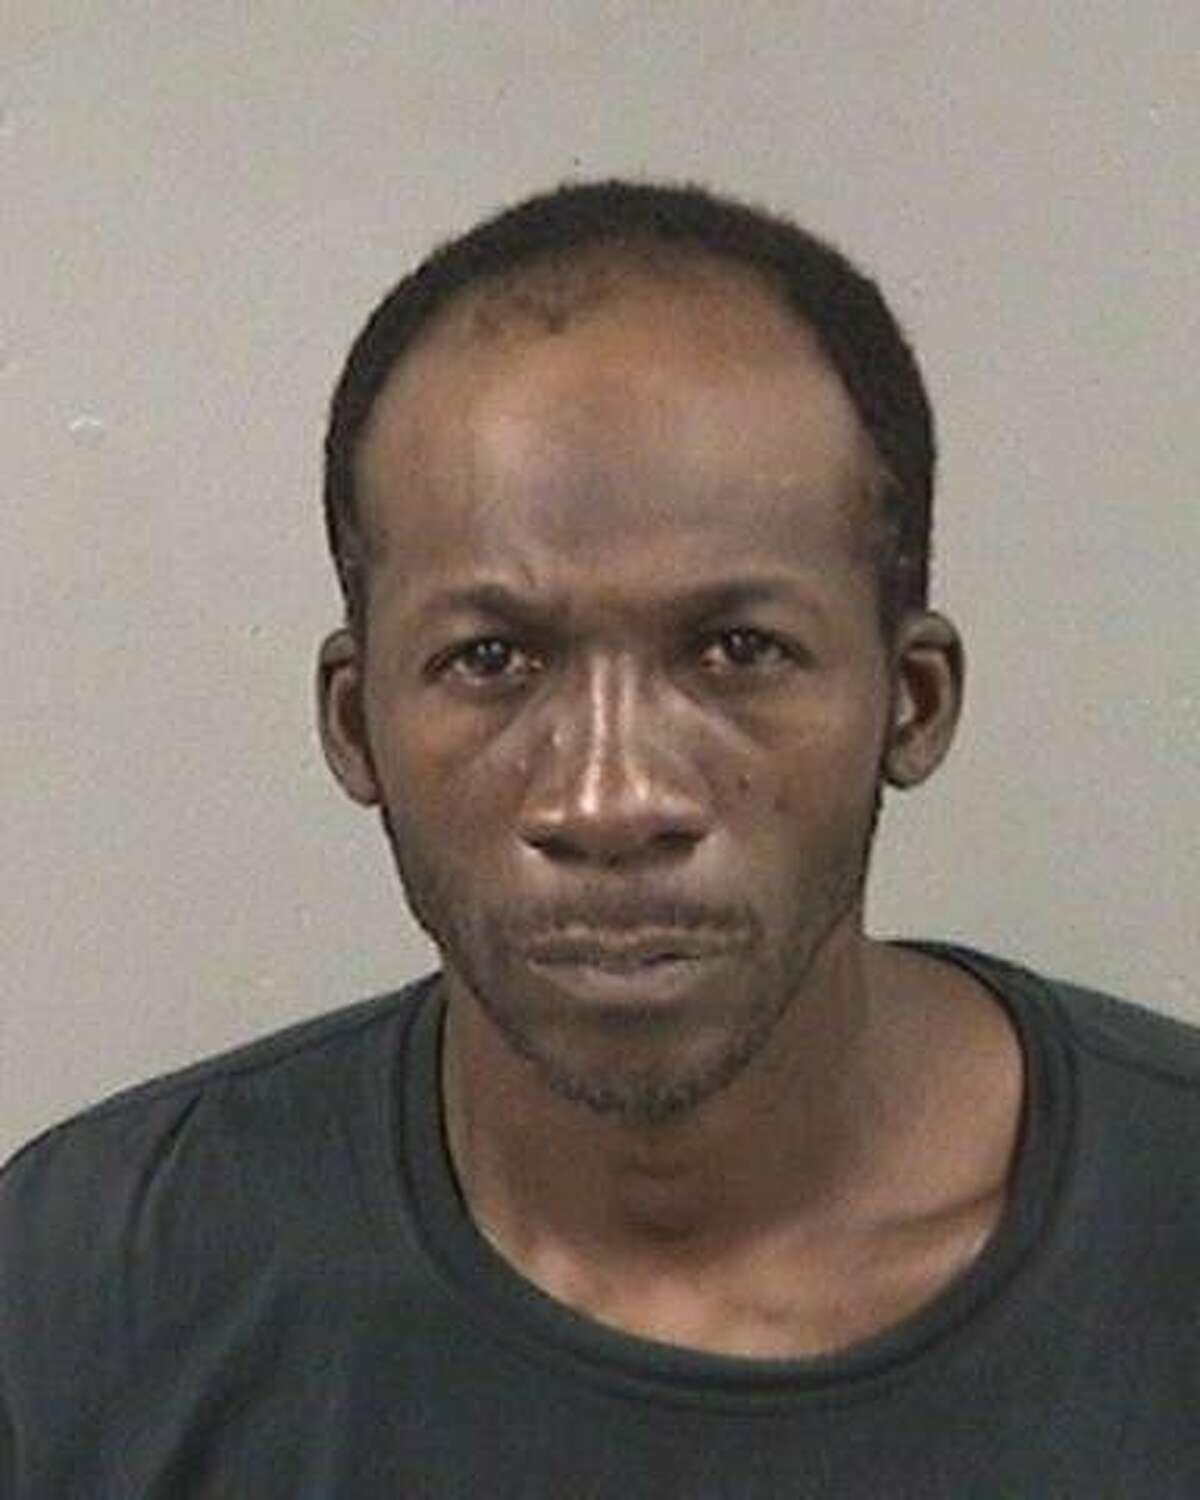 Antwan Alexander Johnson, 40, of Oakland, was arrested after he allegedly lit Halloween costumes on fire in a San Leandro Walmart Tuesday, Oct. 13, 2005.